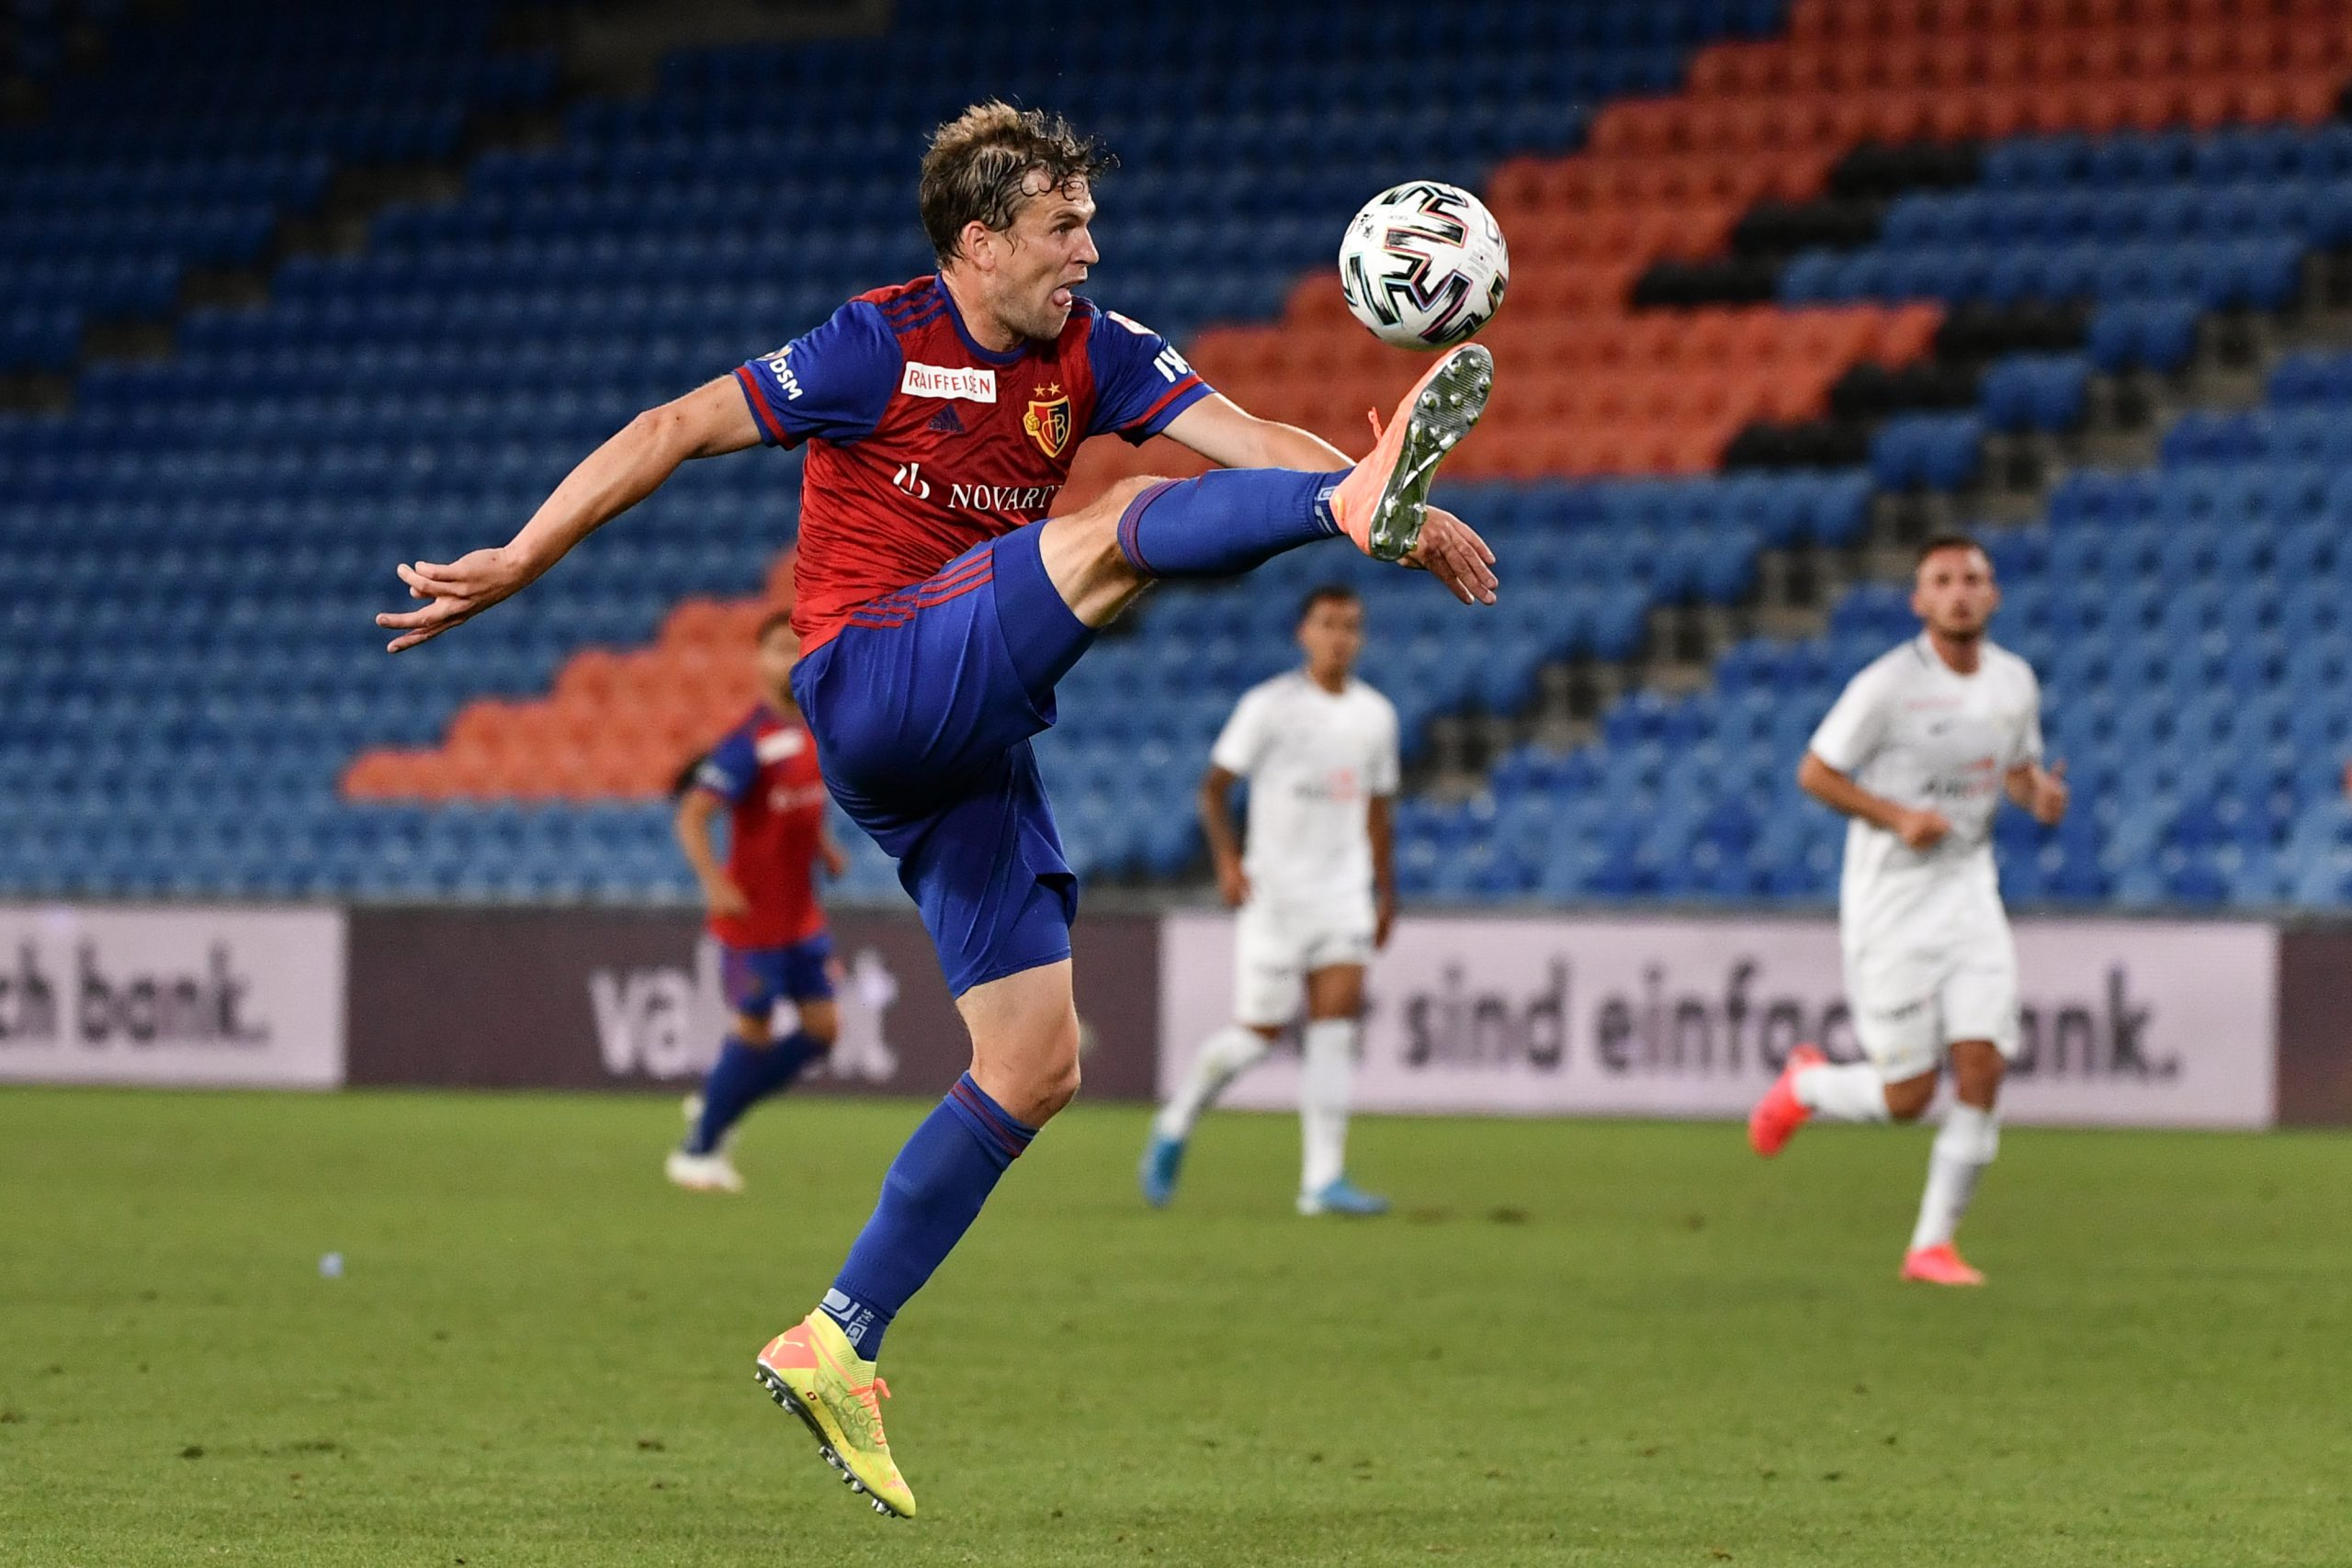 FC Basel's Swiss midfielder Fabian Frei controls the ball during the Swiss Super League football match between FC Basel and FC Zurich played with its U21 team as part of its first-team squad was placed under lockdown after six players and three staff members have been tested positive to the COVID-19, on July 14, 2020 in Basel. (Photo by Fabrice COFFRINI / AFP) (Photo by FABRICE COFFRINI/AFP via Getty Images)